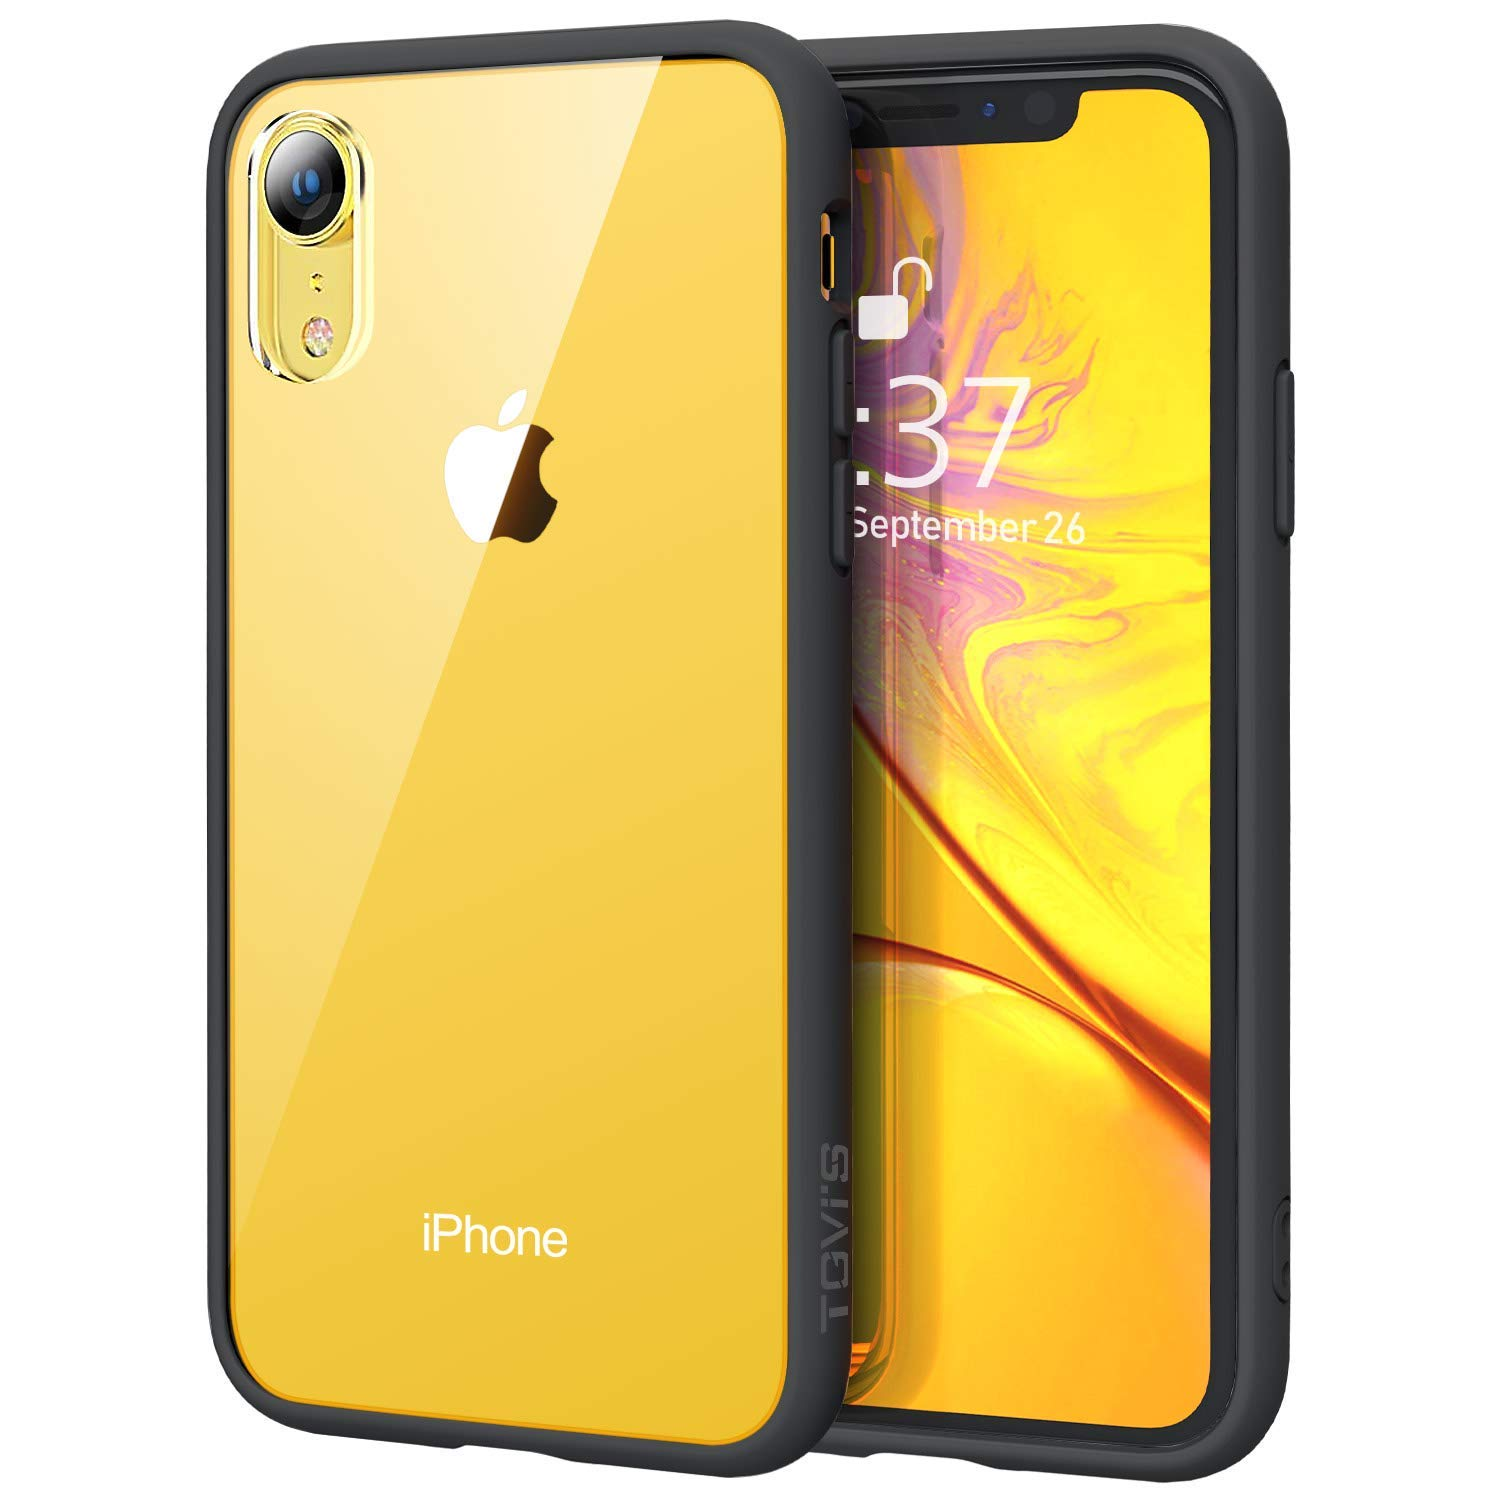 outlet store f8210 c2f44 OCYCLONE XR Clear Case, iPhone XR Clear Case, [Anti-Yellow]  [Anti-Scratches] Slim Thin 9H Tempered Glass Back with Soft Black TPU  Bumper Protective ...